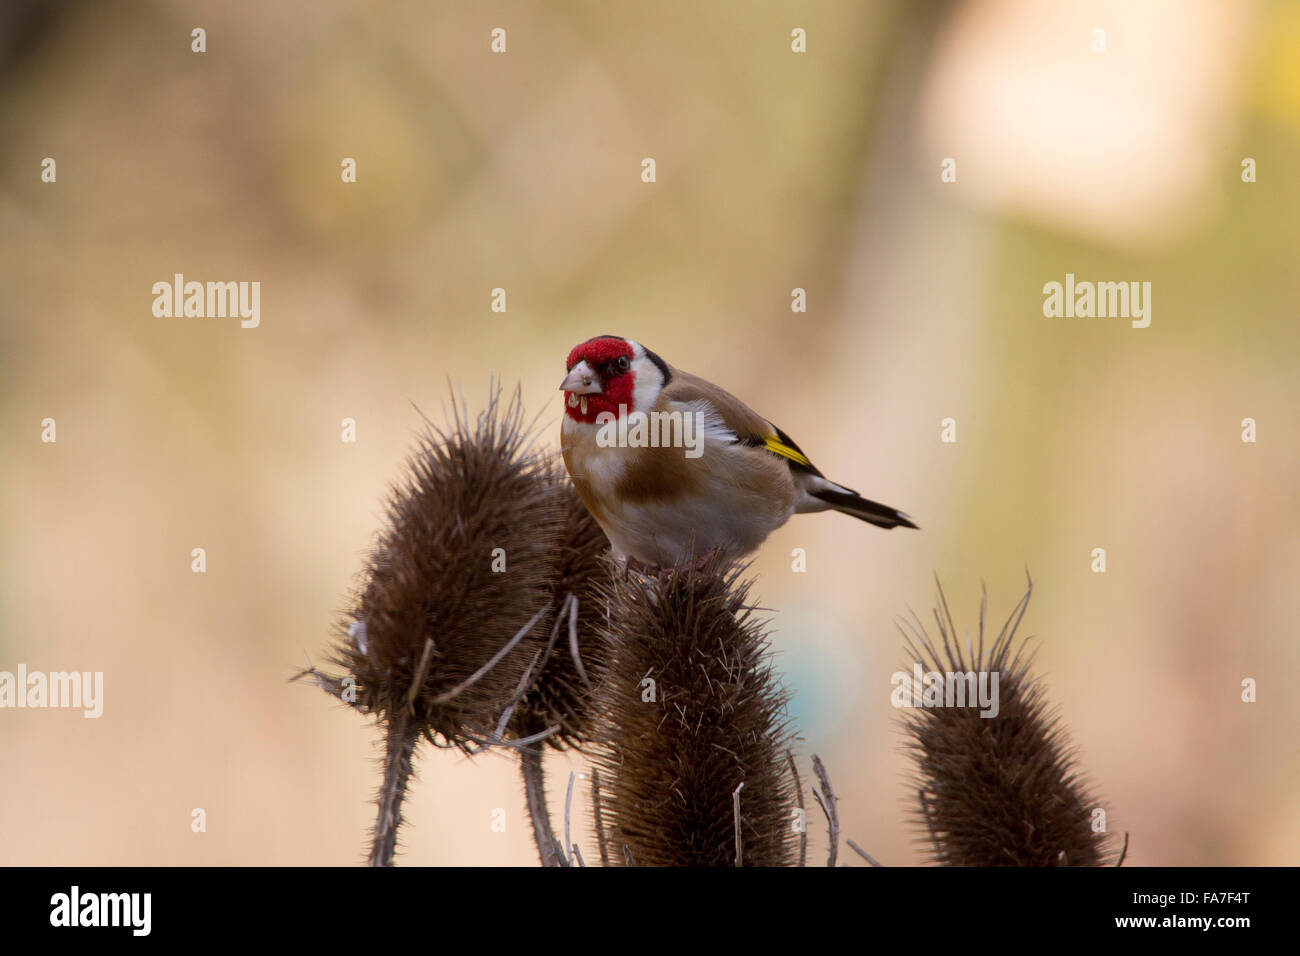 Goldfinch (Carduelis carduelis) at a silver thistle - Stock Image